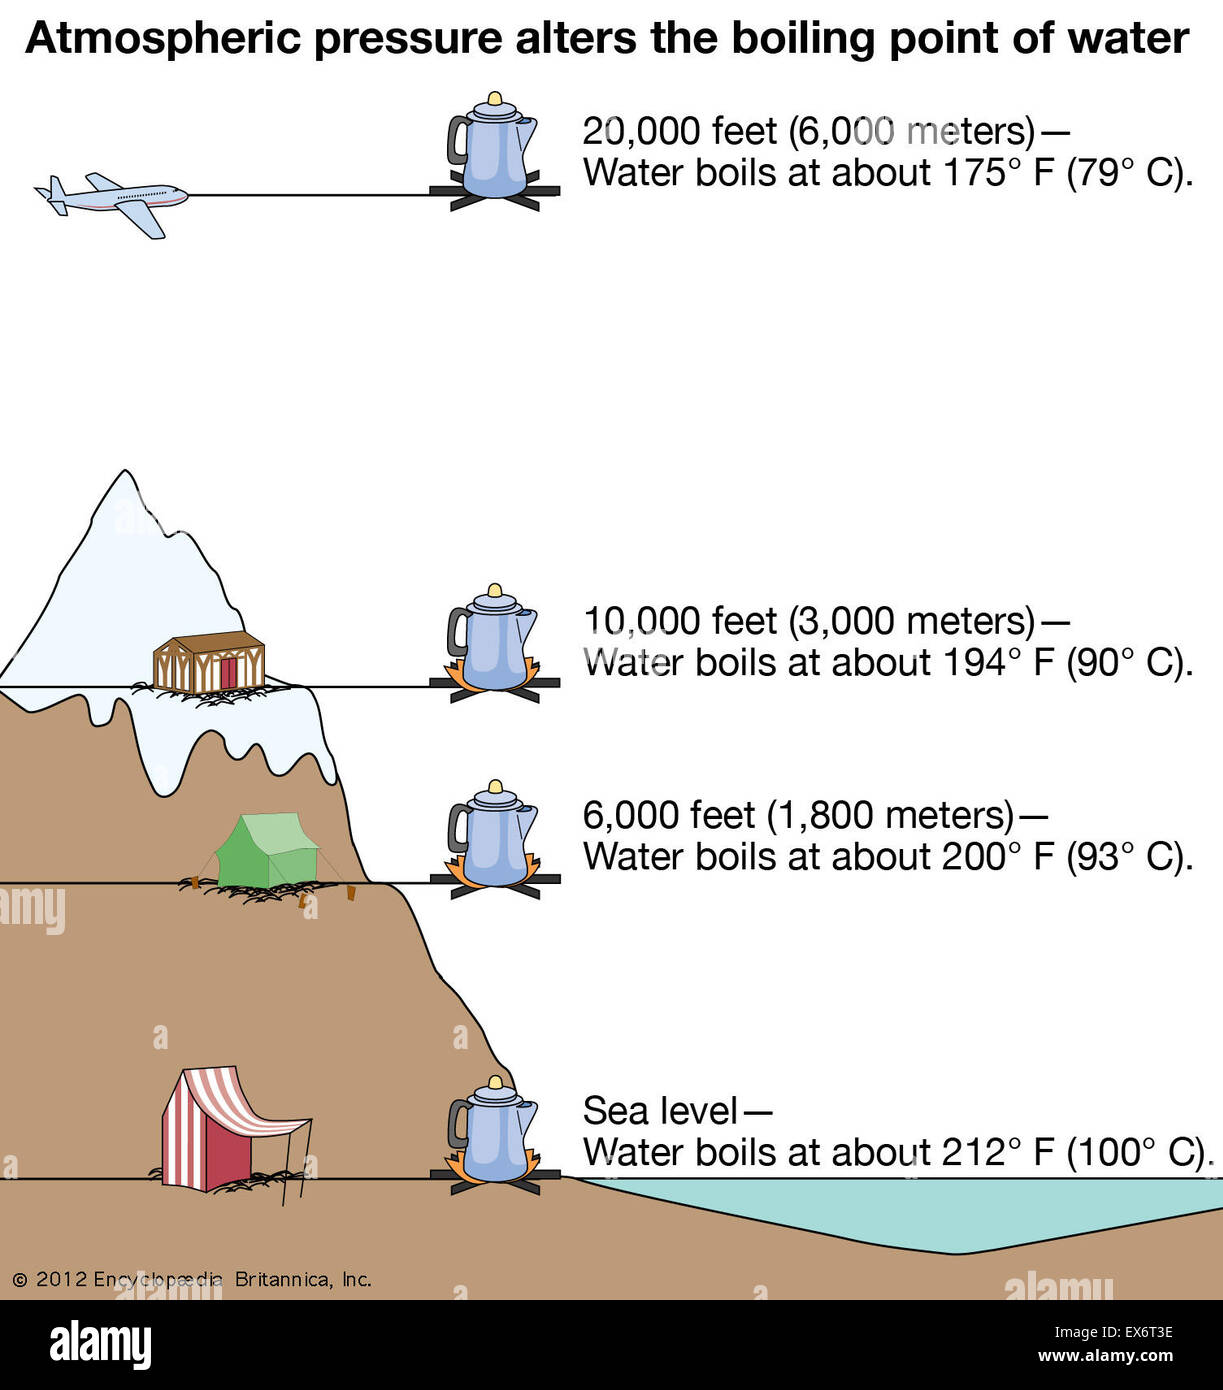 atmospheric pressure alters the boiling point of water stock photo  84973154